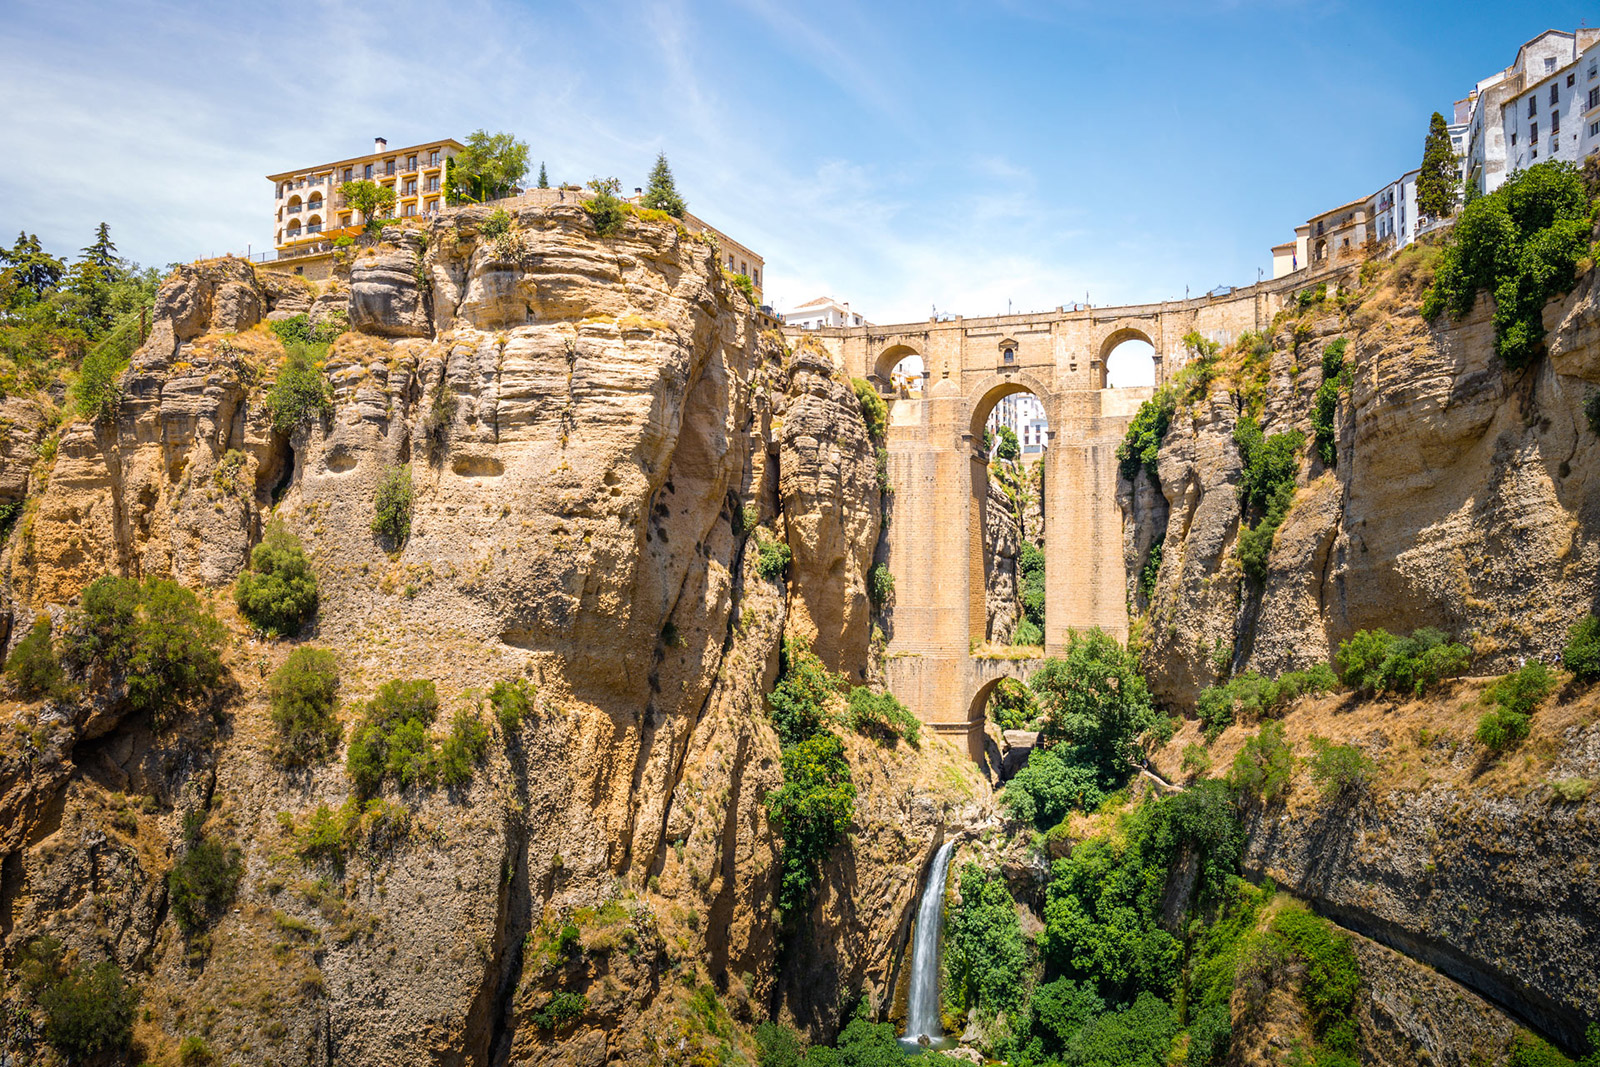 Ronda in Spain will host UVA Festival